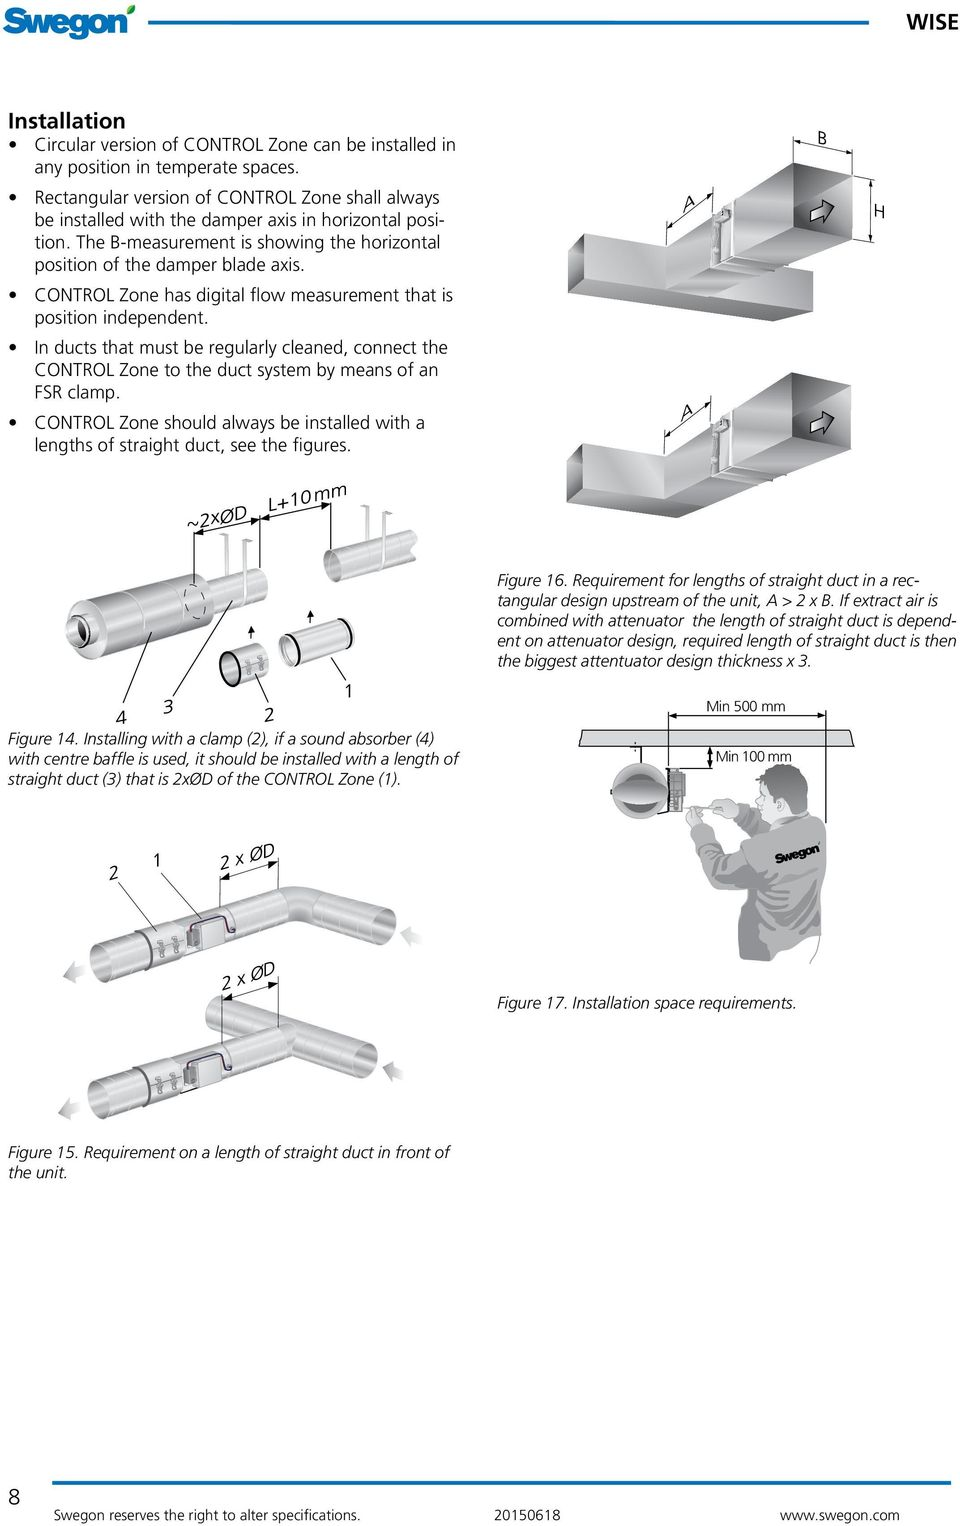 In ducts that must be regularly cleaned, connect the to the duct system by means of an FSR clamp. should always be installed with a lengths of straight duct, see the figures. Figure 16.